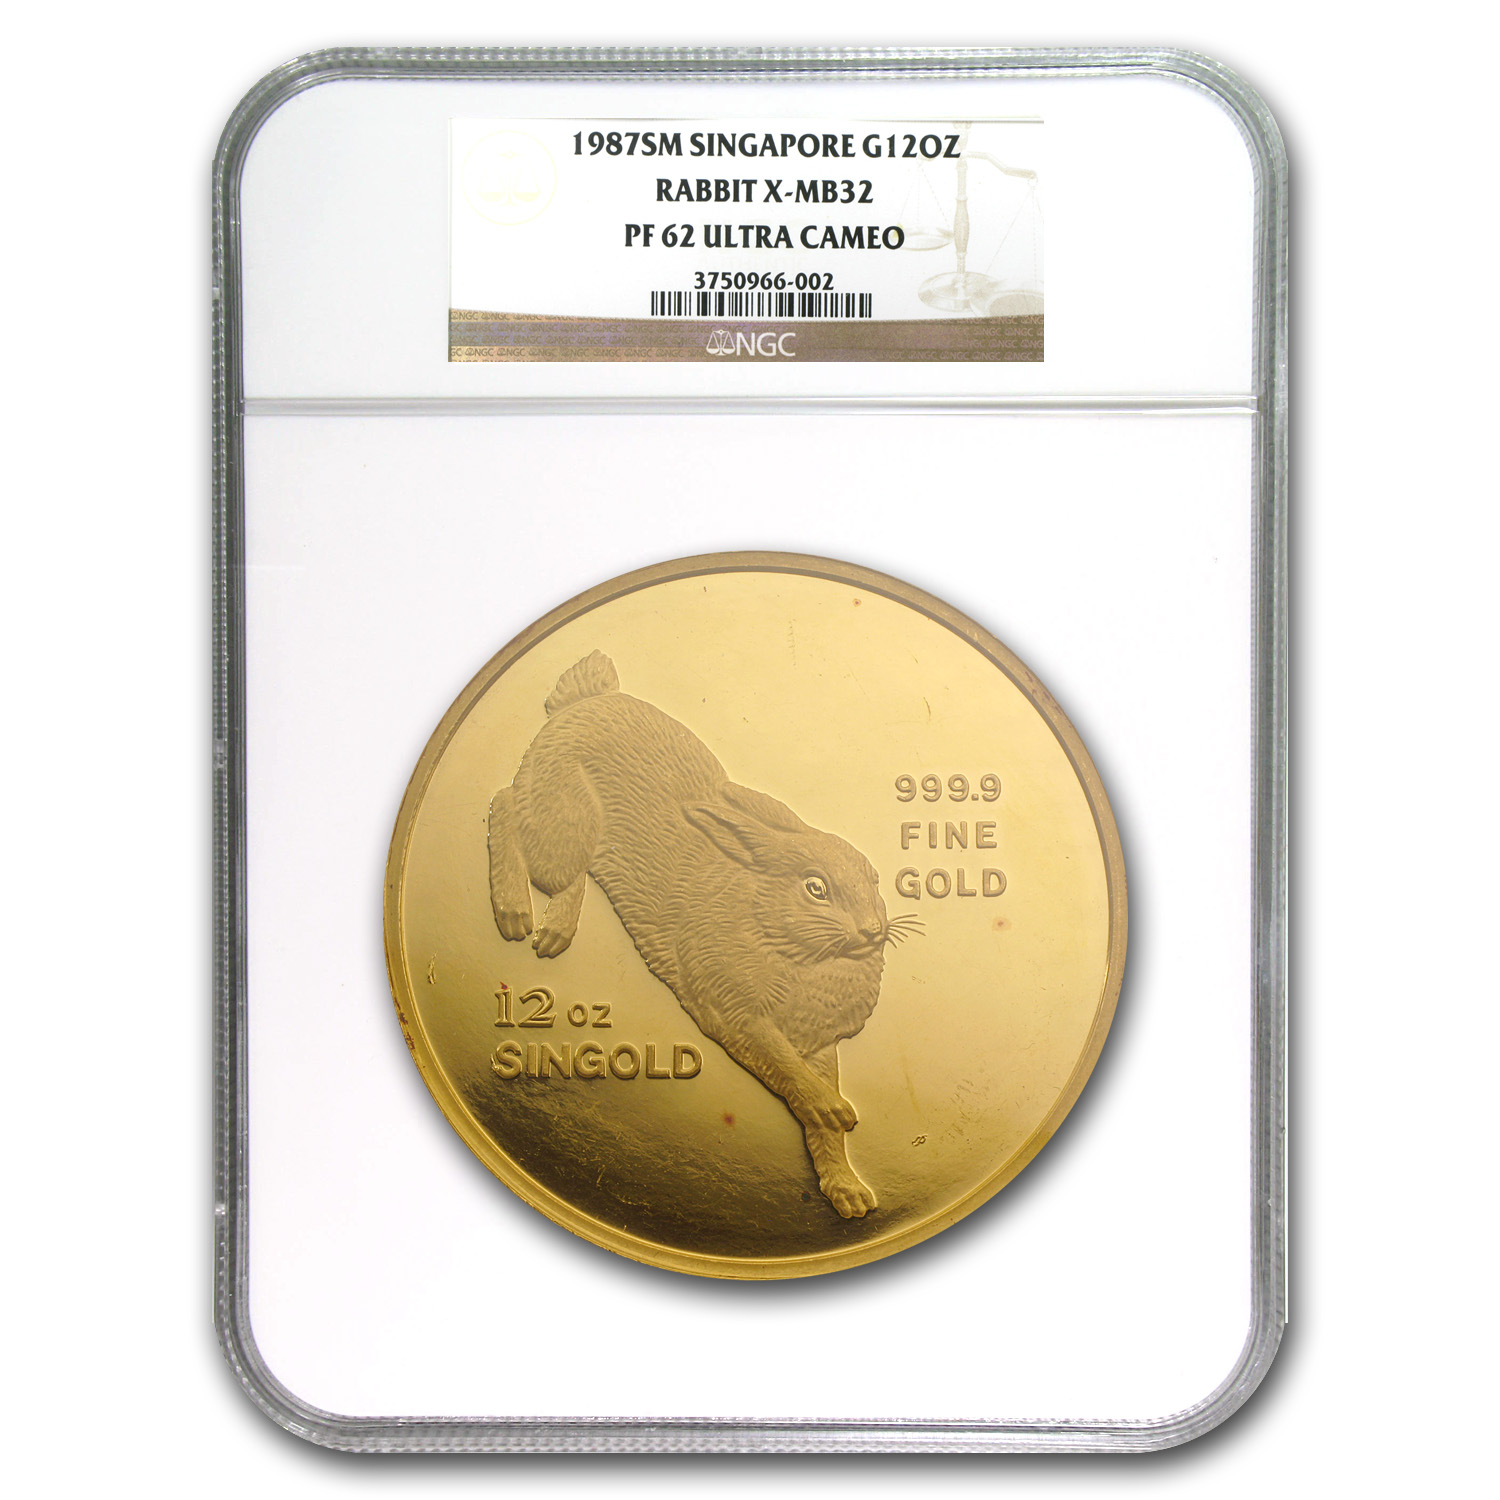 1987 Singapore 12 oz Proof Gold Singold Rabbit PF-62 NGC